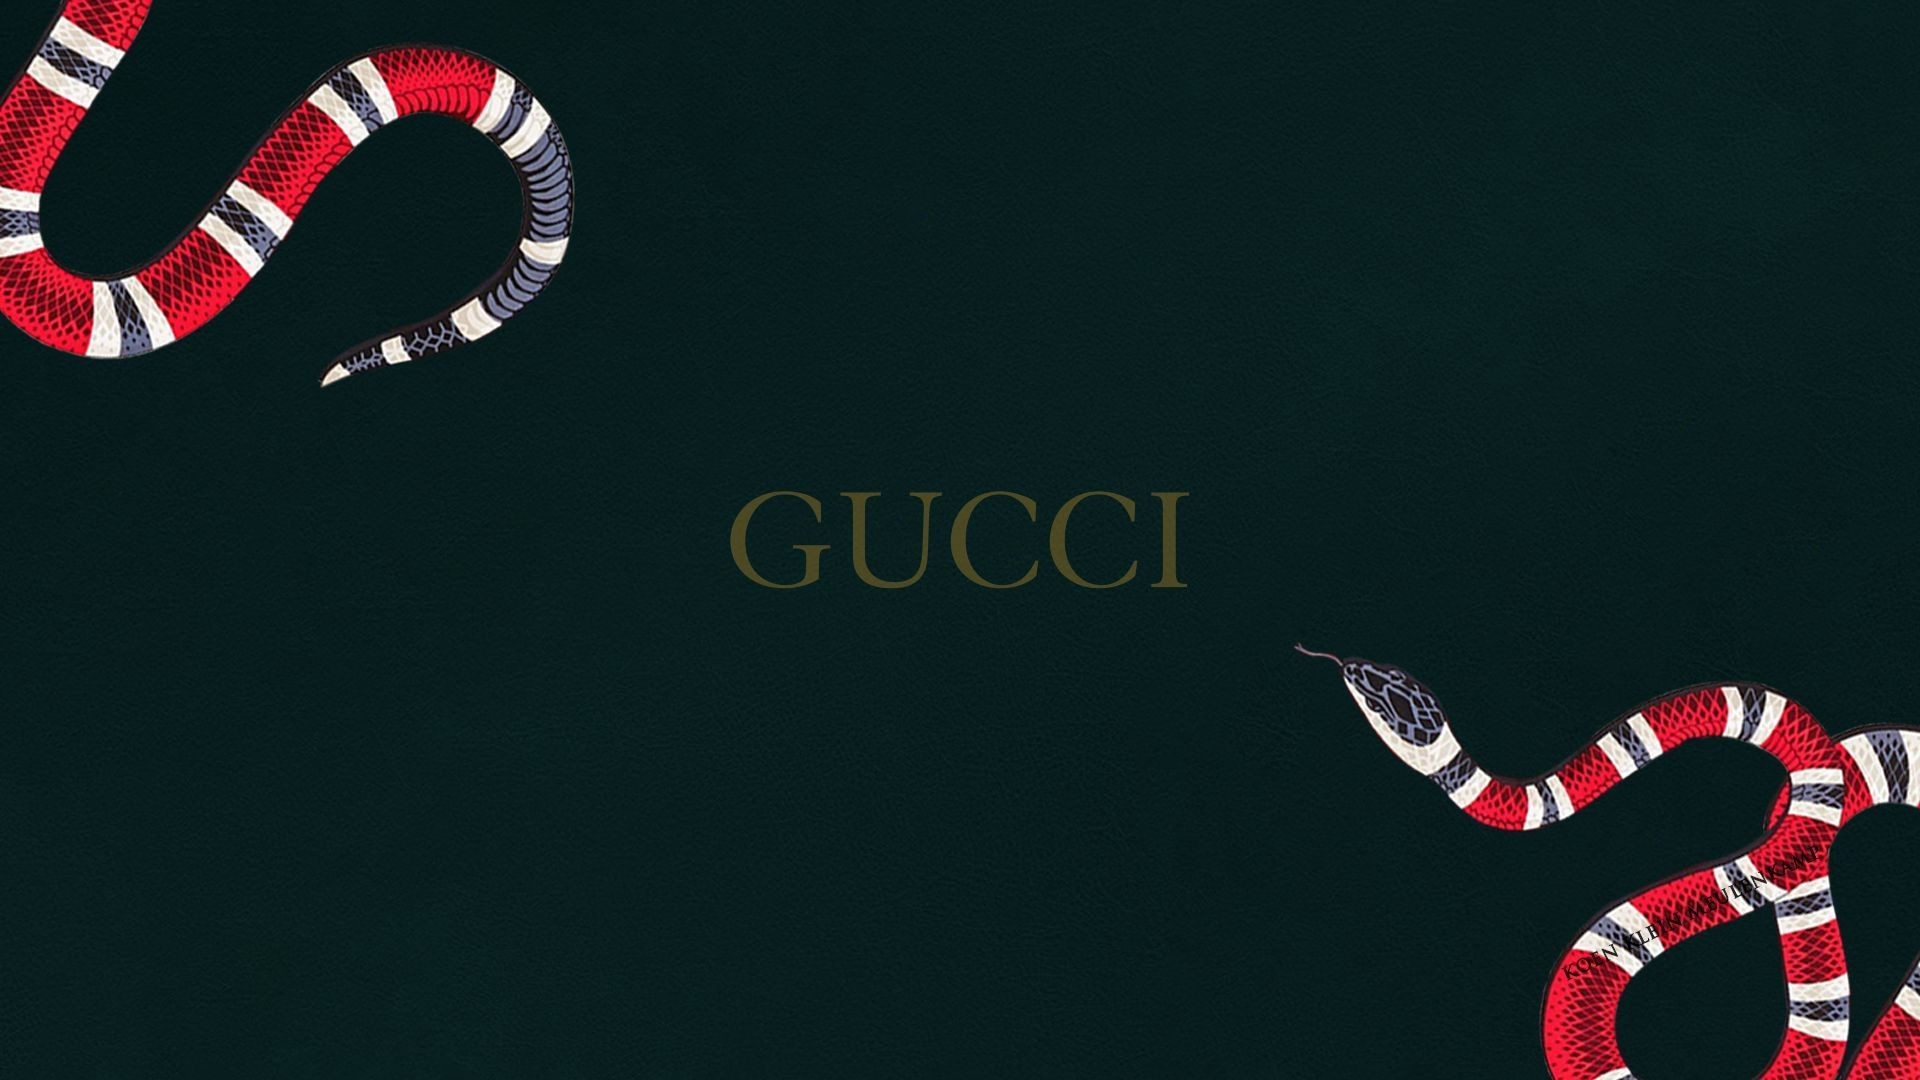 "1920x1080 1125x2436 iPhoneXpapers - ab59-wallpaper-gucci-white-logo"">"